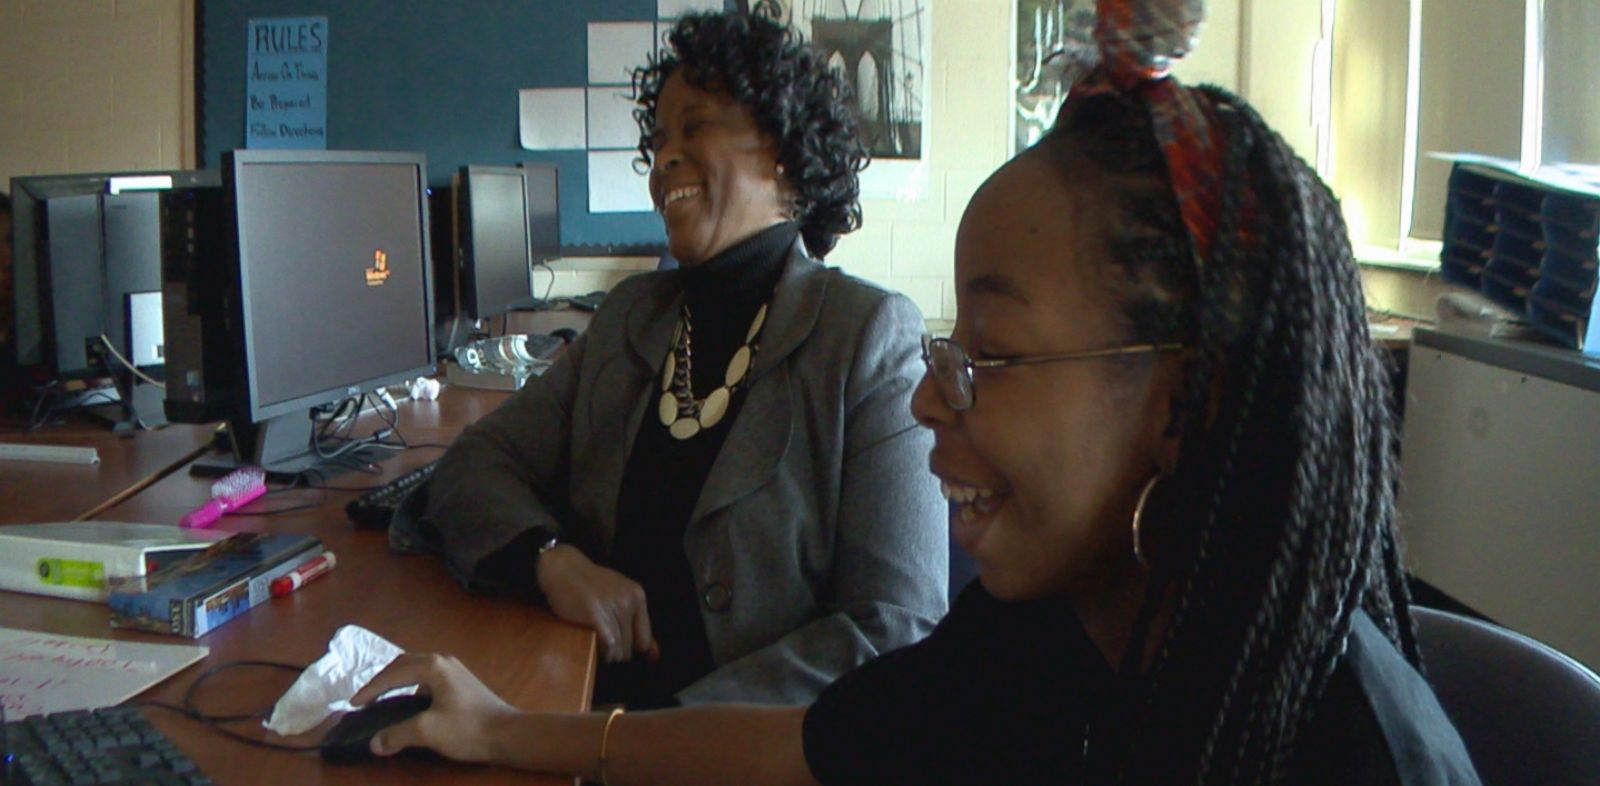 PHOTO: In this 2013 image, Strawberry Mansion High School principal Linda Cliatt-Wayman talks with Malaysia, then a sophomore at the school.